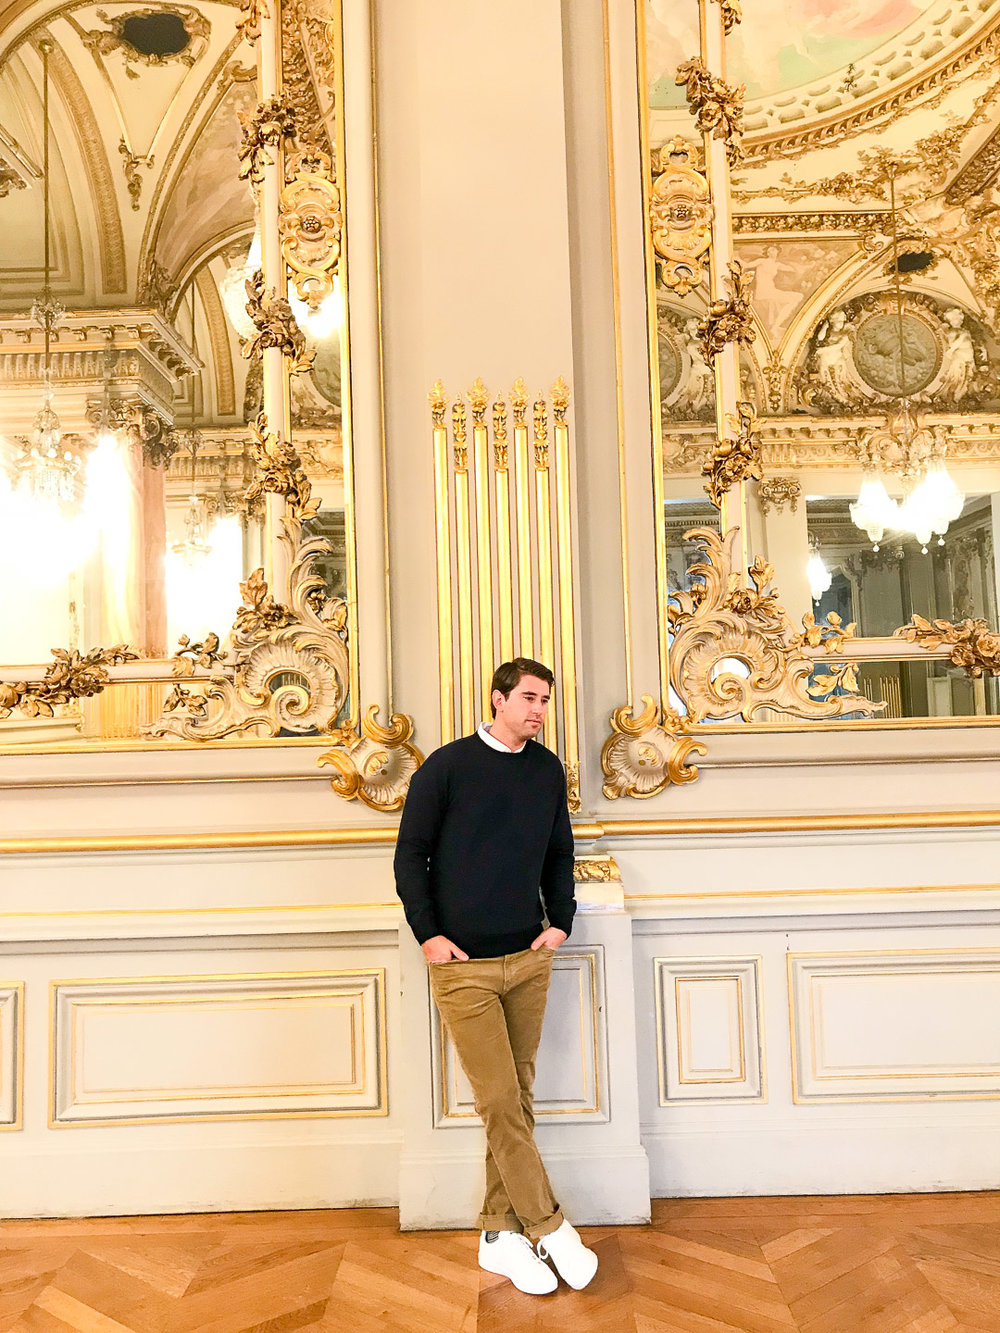 In Musee d'Orsay